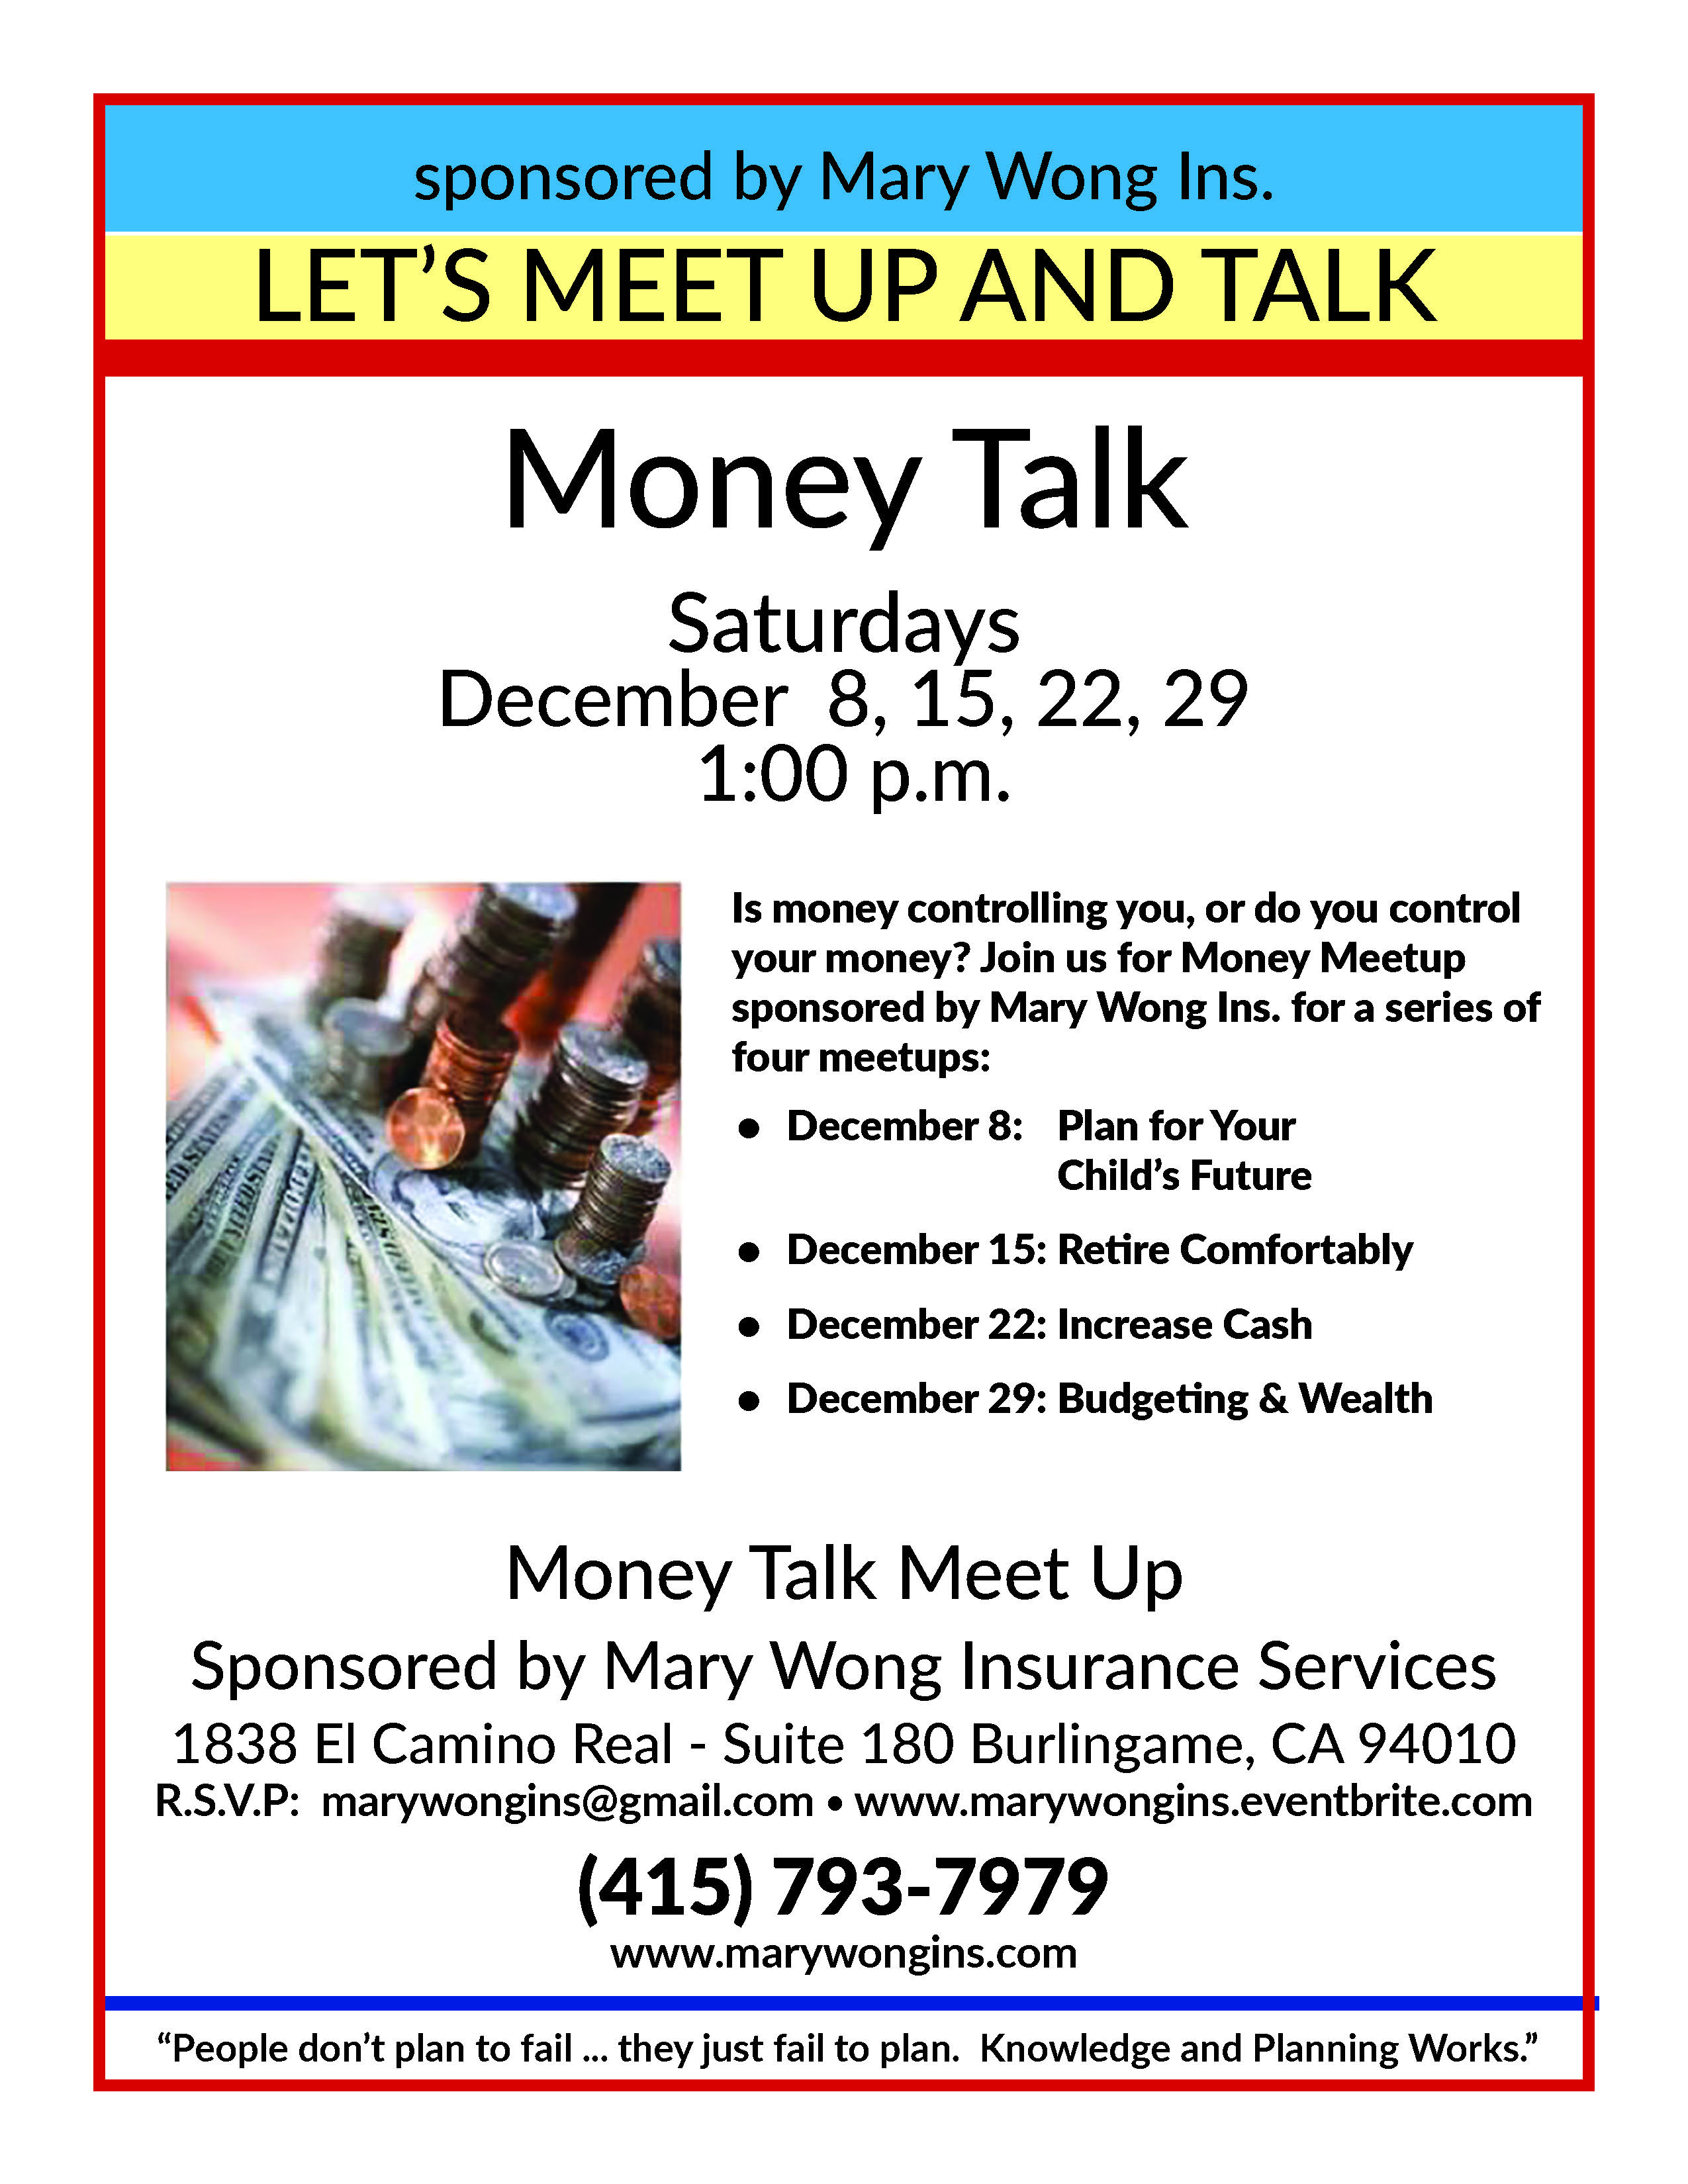 Saving Money - Burlingame Focused Money Talk Meetup